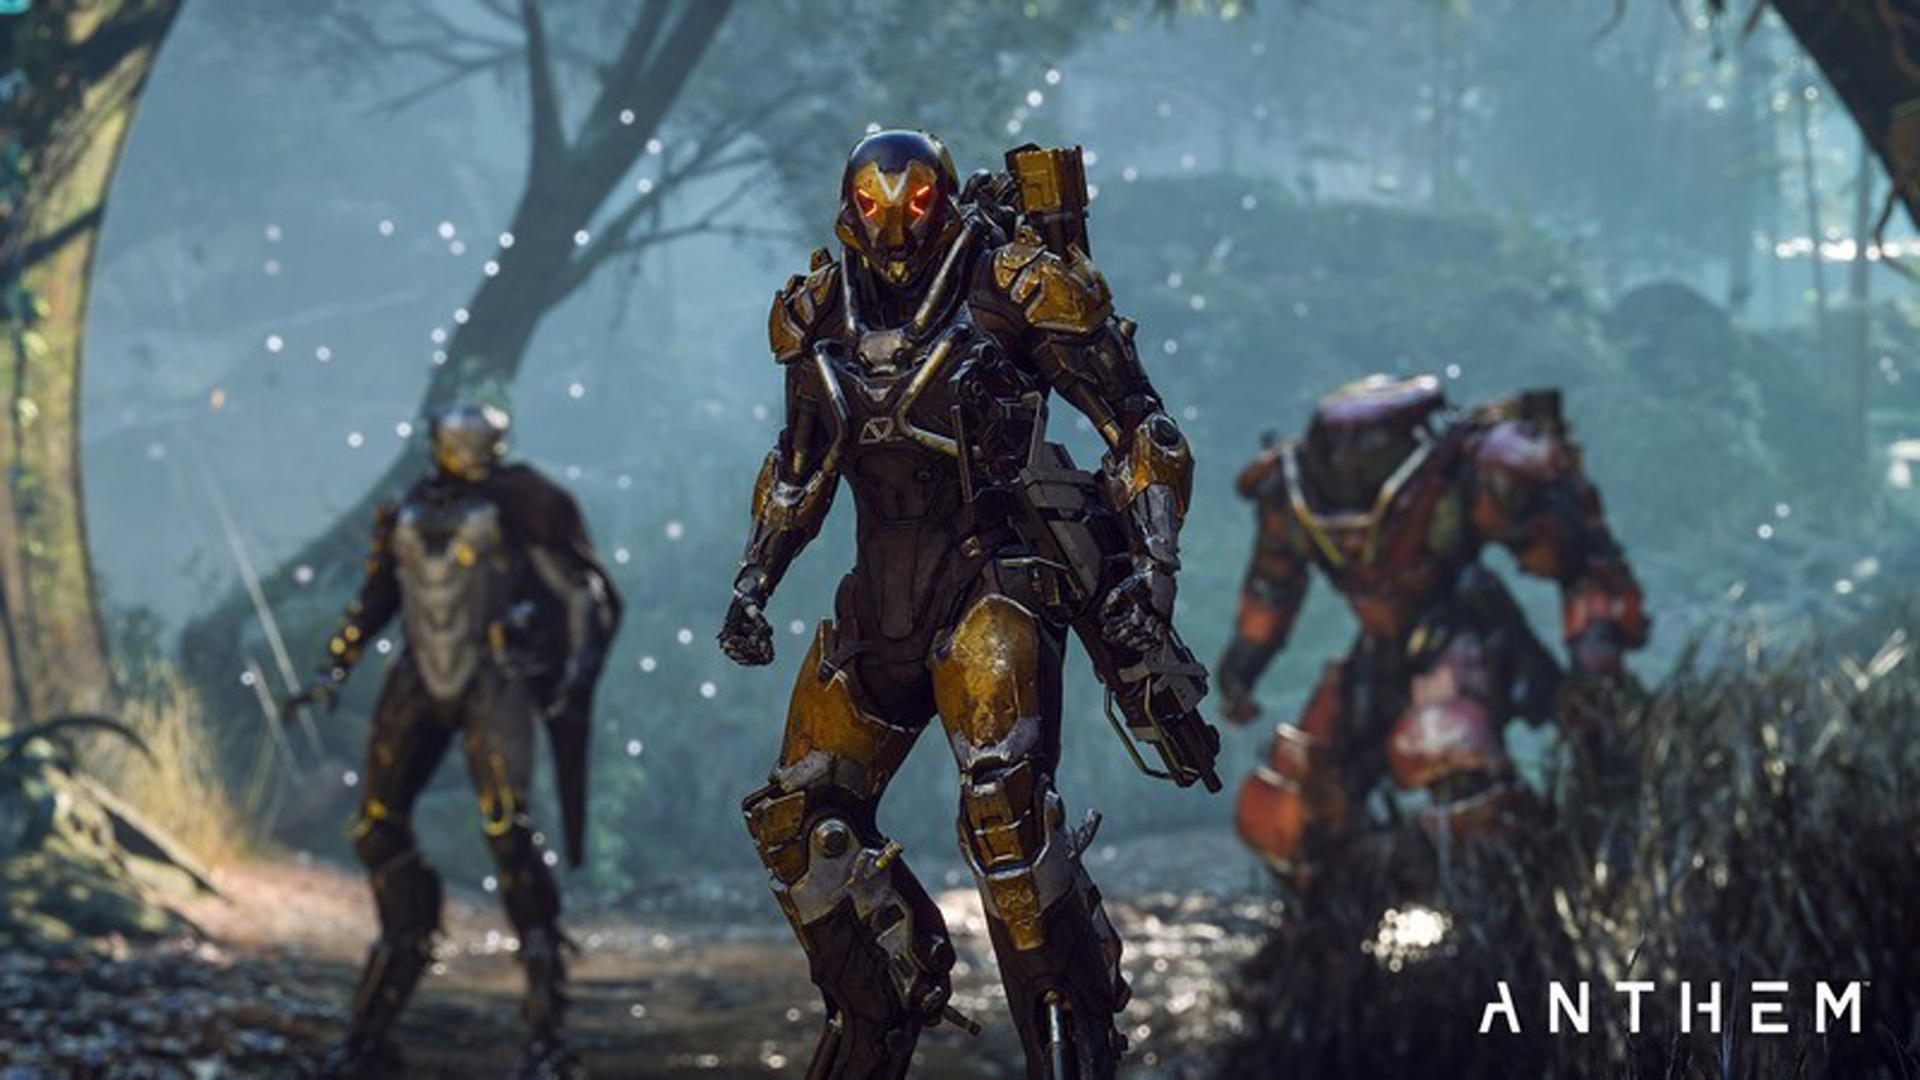 ANTHEM Closed Alpha Announced. Here is How to Sign Up